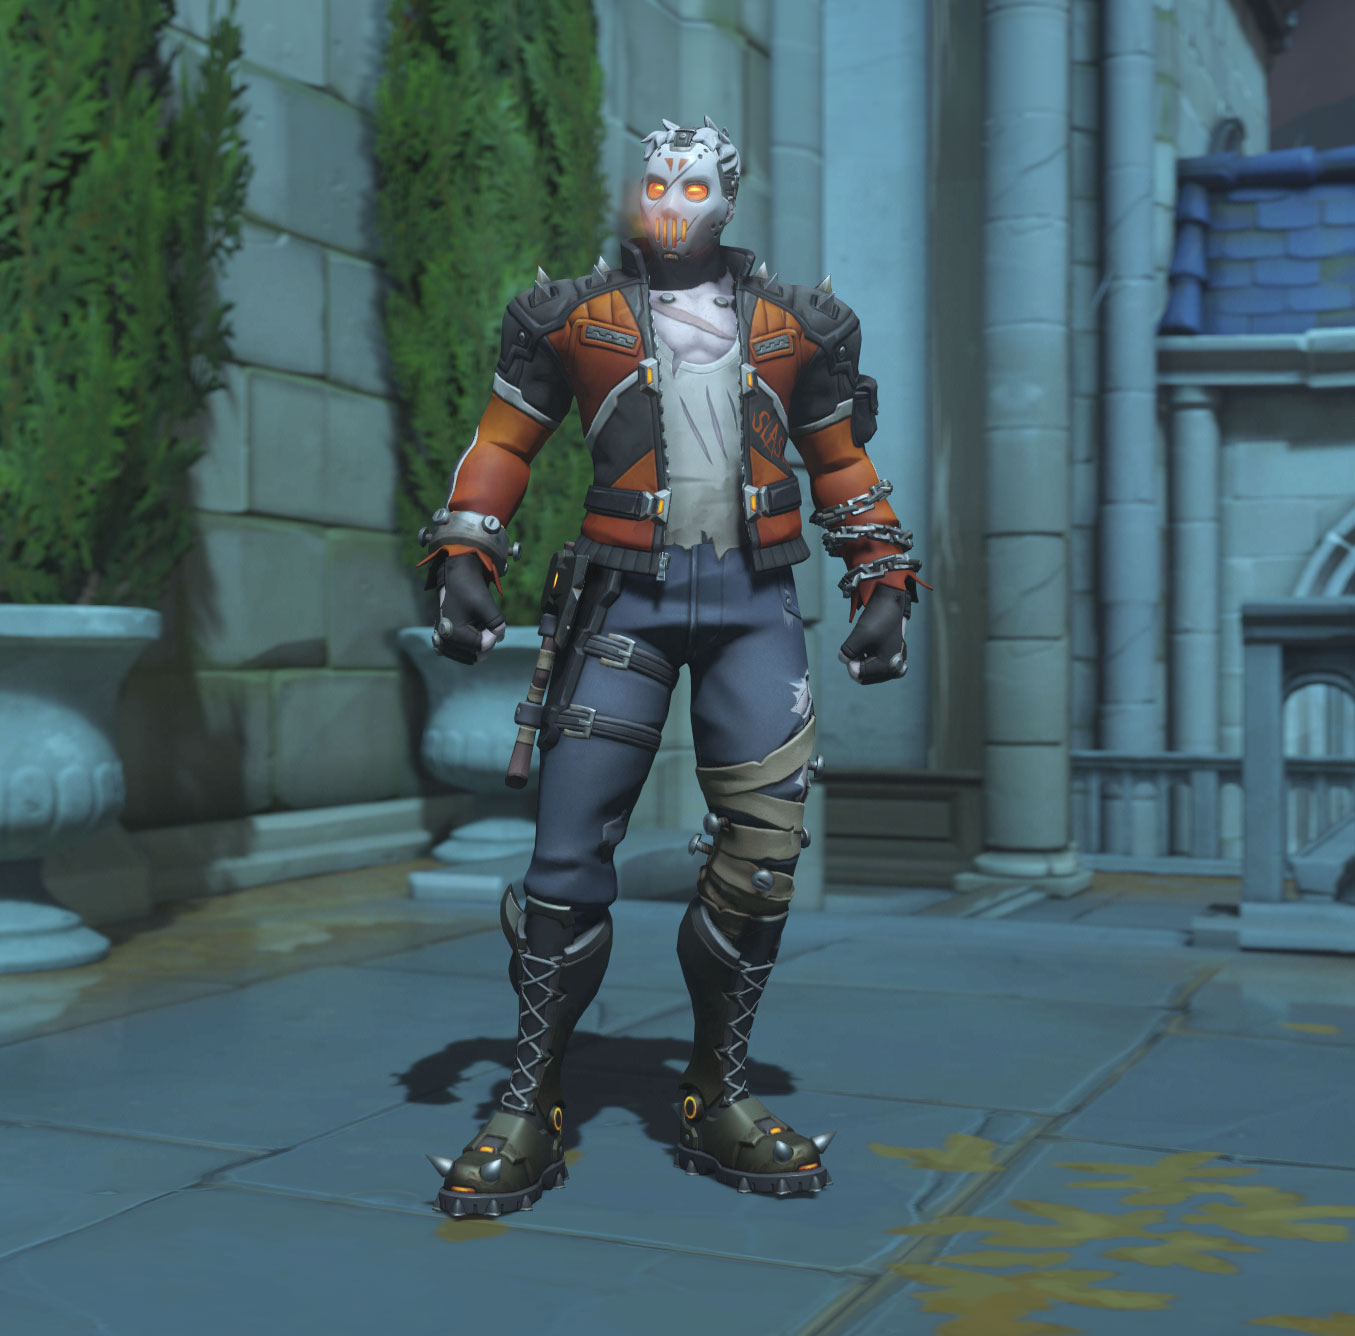 overwatch halloween skins 2018 list - swamp monster, banshee, jack-o